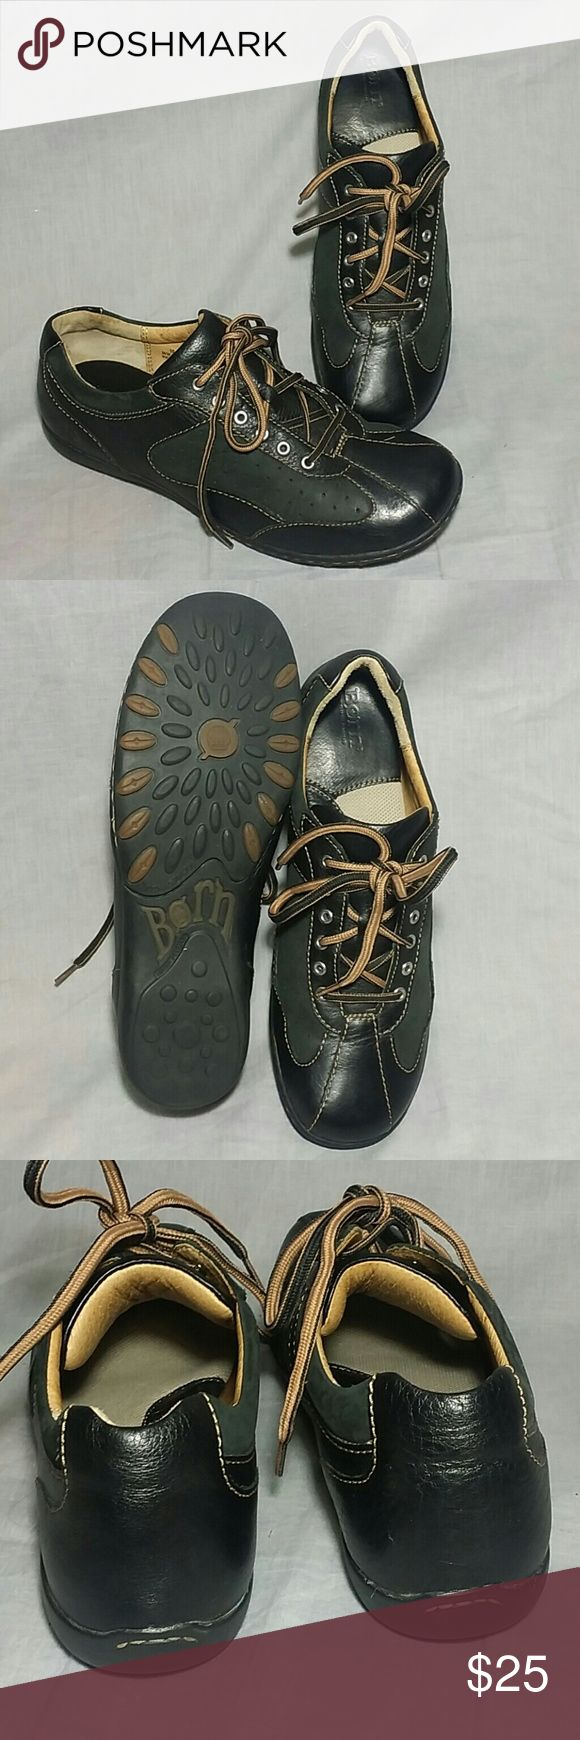 Women's Born Shoes Black 10 M Leather Lace-ups Item has a good condition ( please check my bundle discount thanks for visiting ). Born Shoes